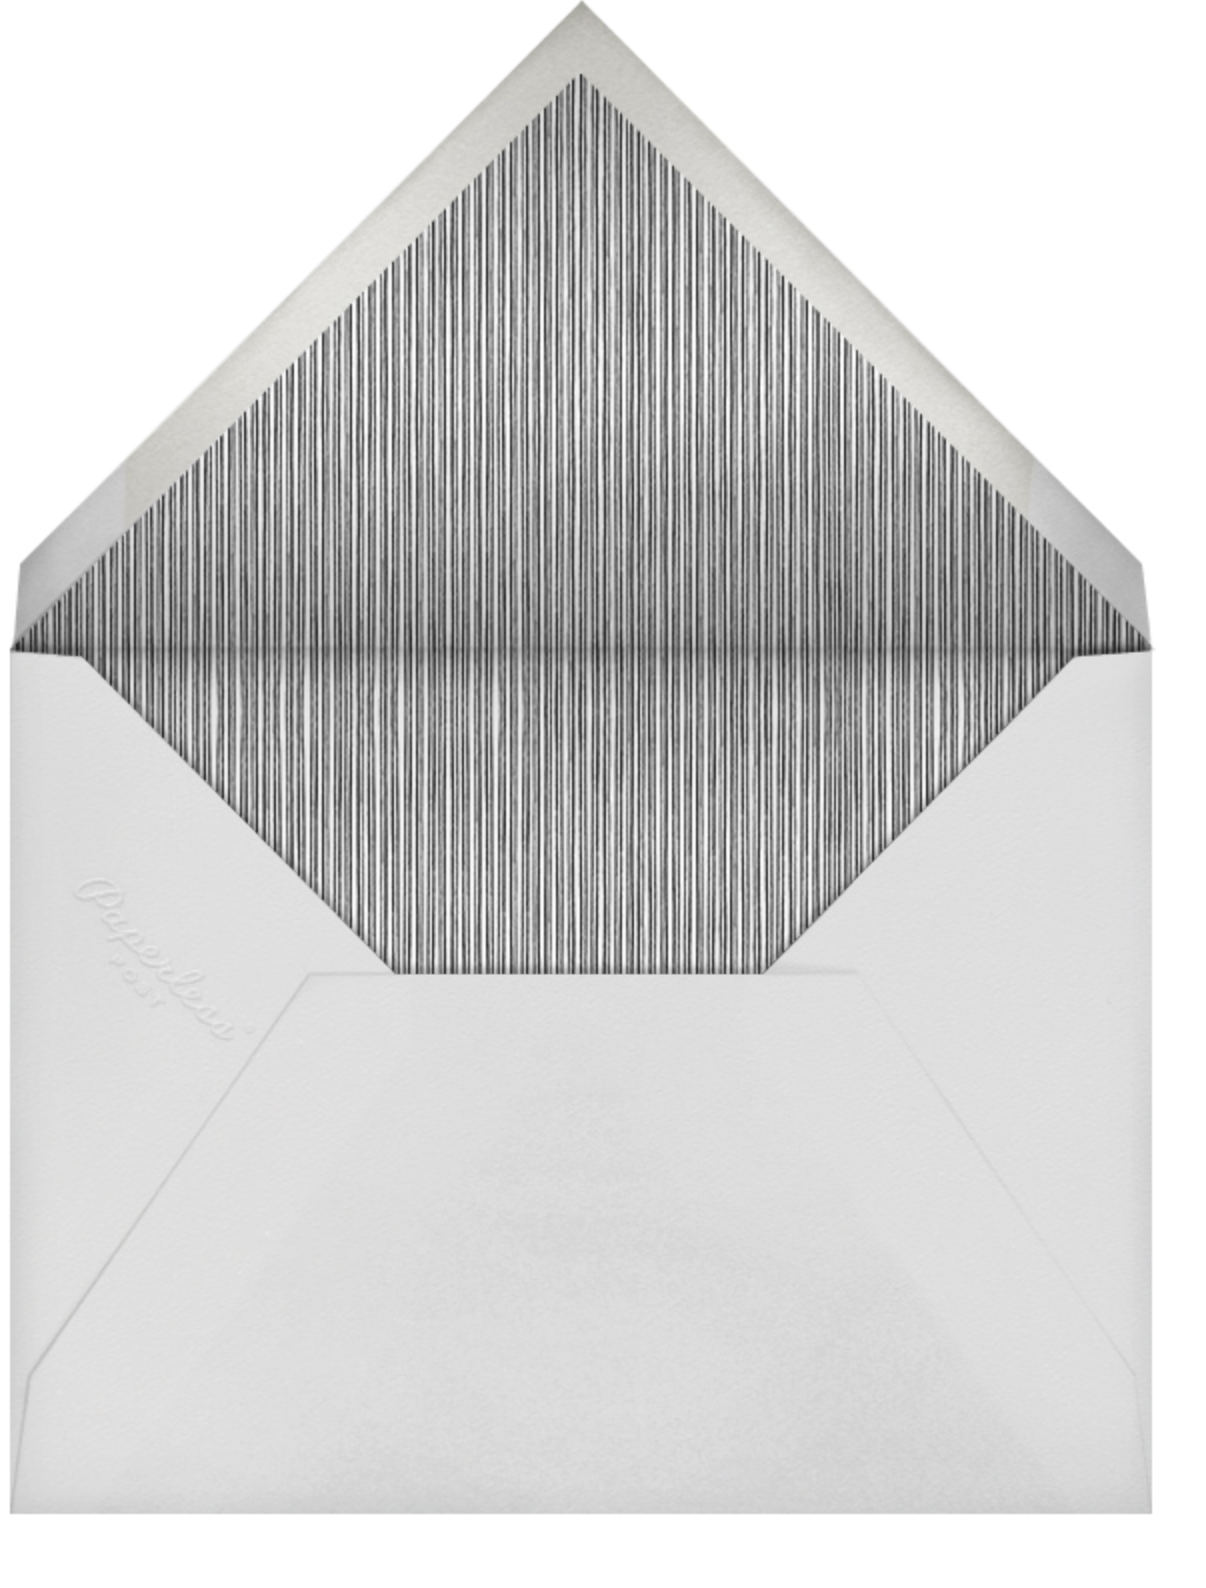 Center Cut Out - Paperless Post - Printable invitations - envelope back